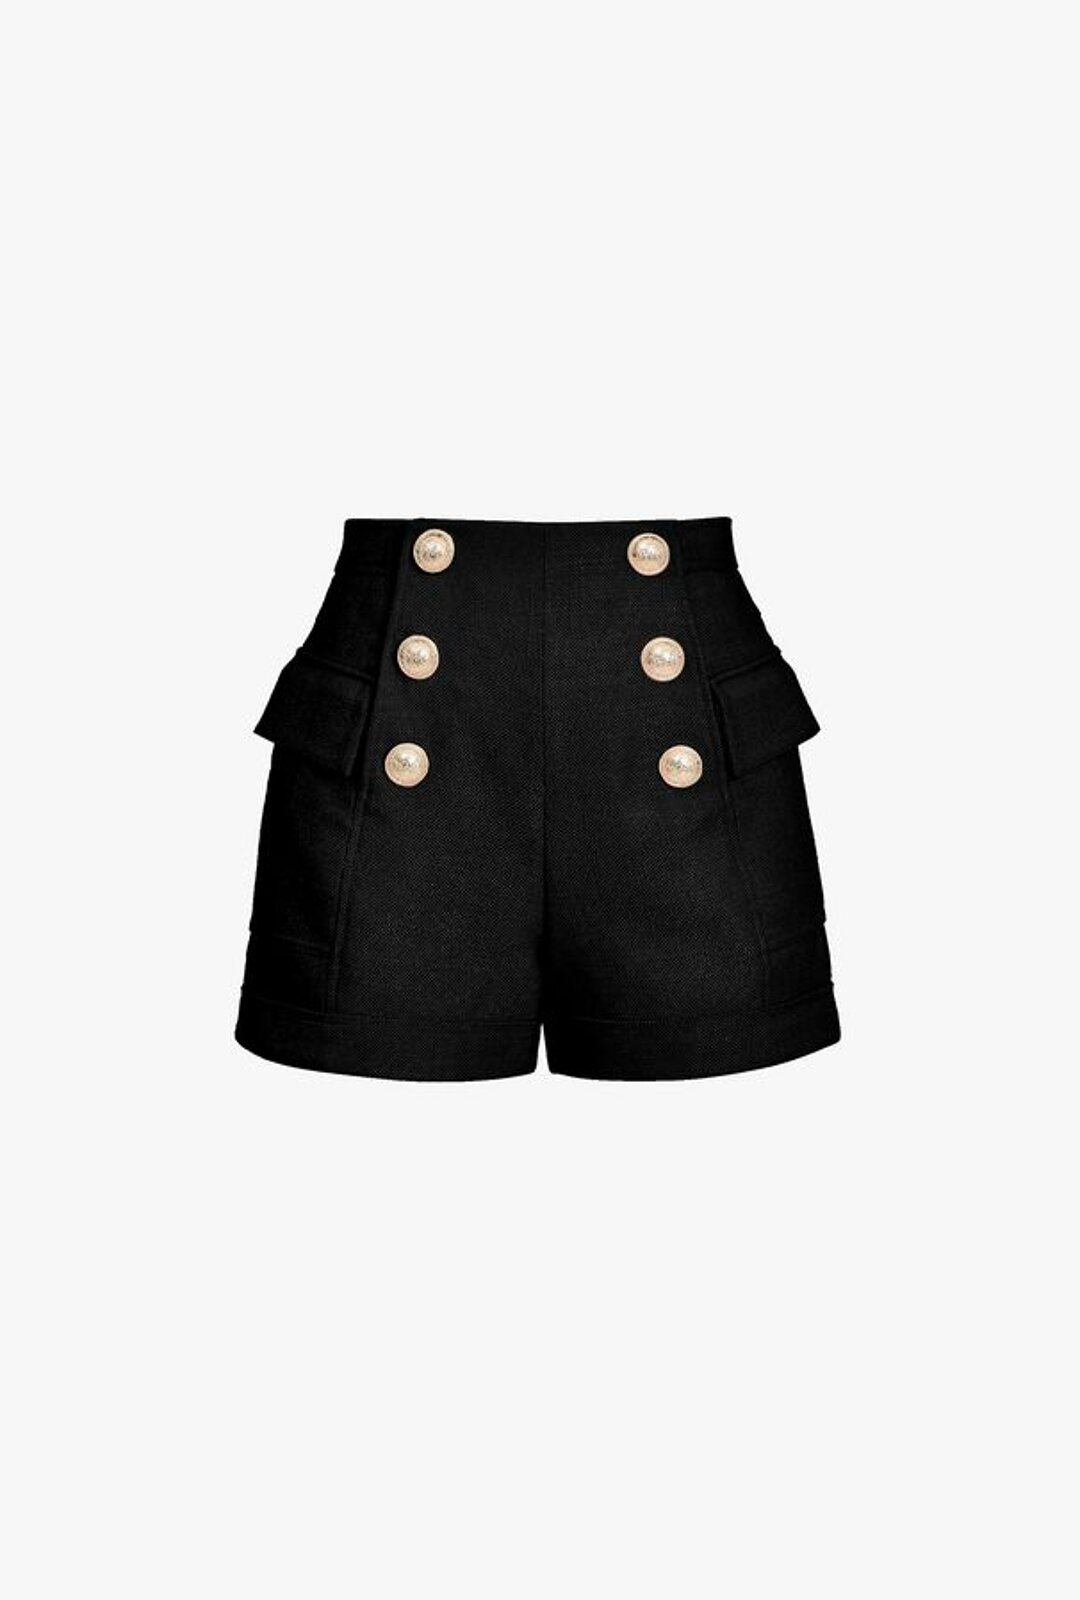 Black High Waisted Shorts With Golden Double Breasted Closure - Balmain